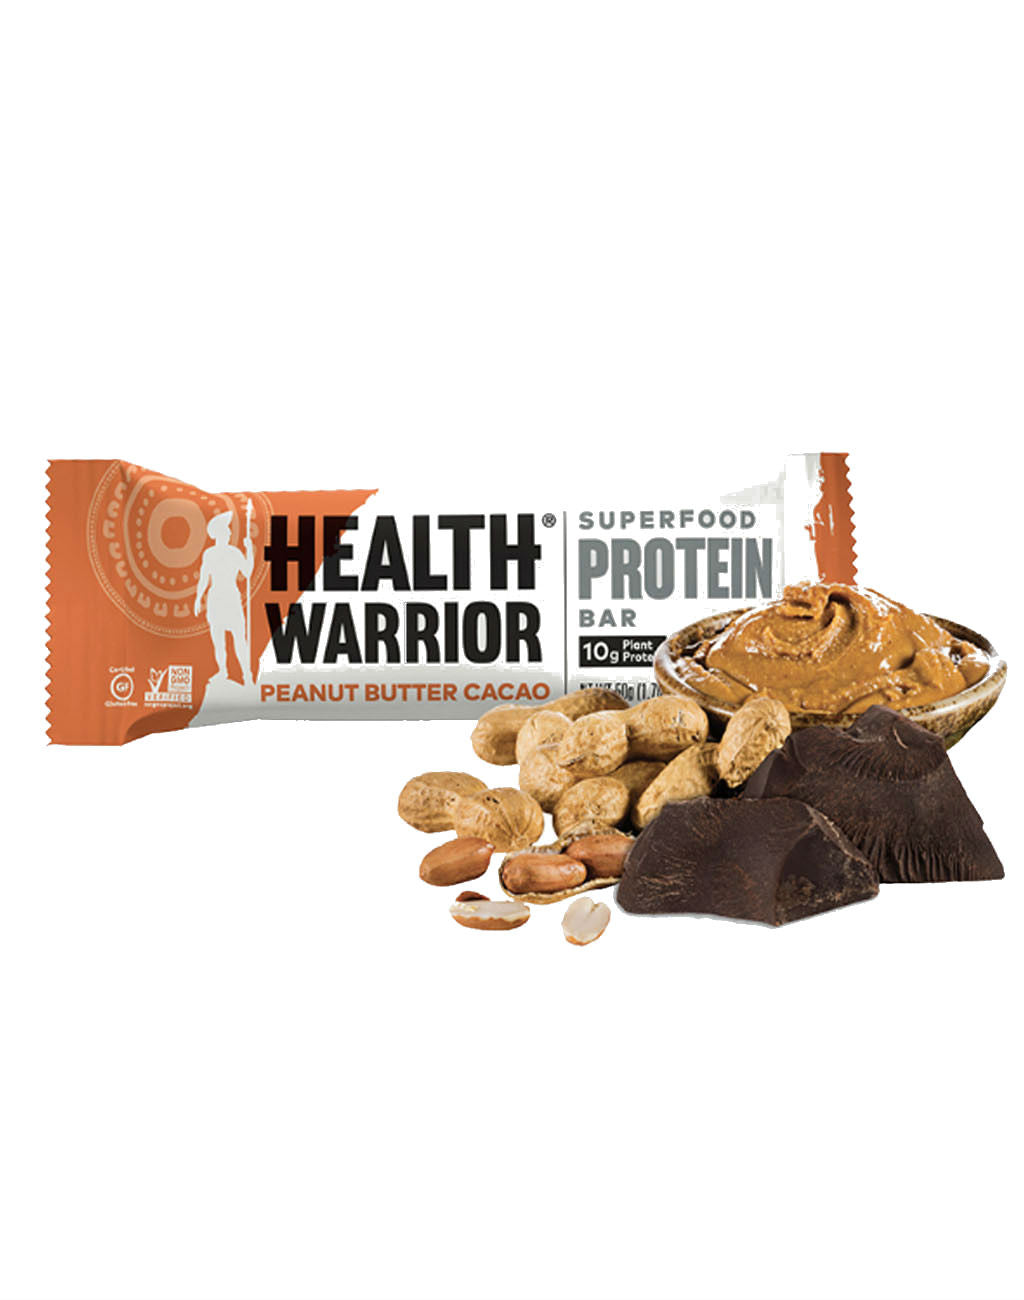 Health Warrior Superfood Protein Bars (12ct box)